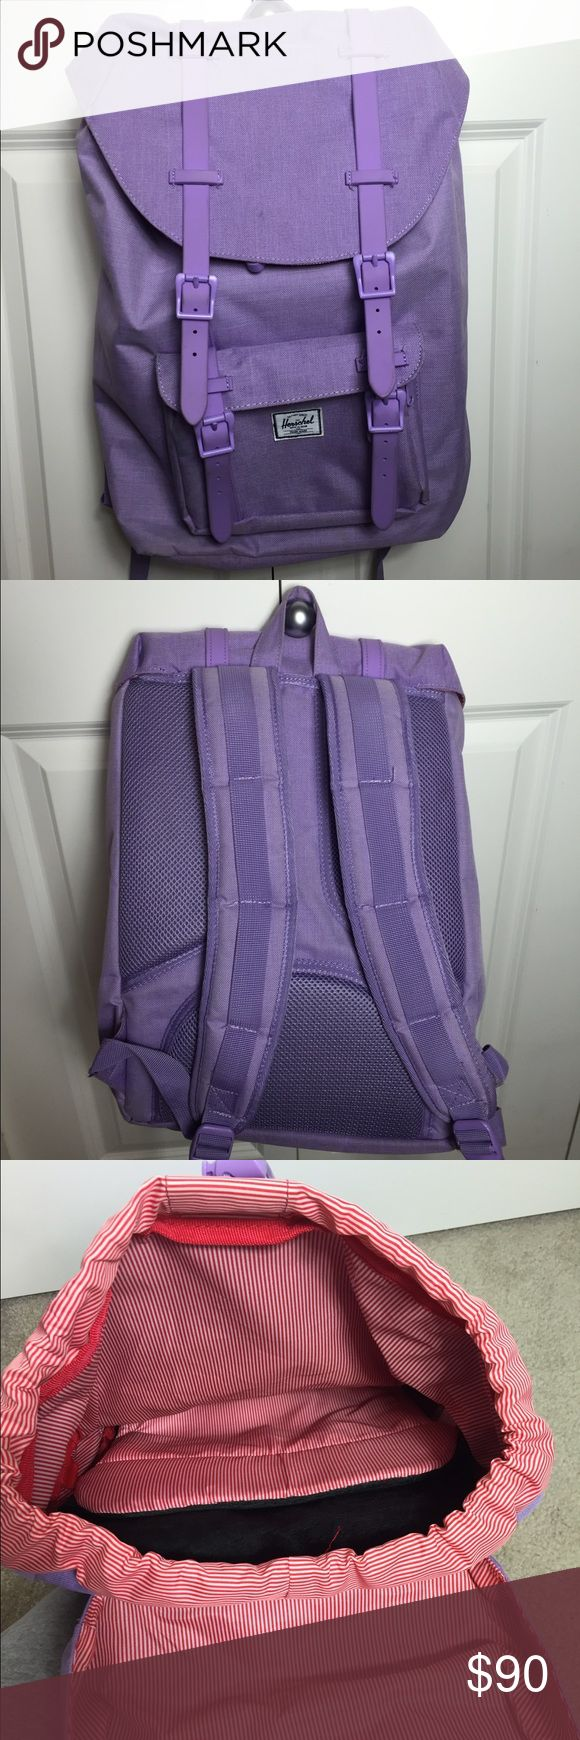 """Herschel Backpack - Little America - mid volume Beautiful lavender backpack for sale! Worn a few times so there is a small grass stain on the front. (Barely noticeable) Super cute for school, weekend get aways, backpacking, or everyday use! Size: 11""""W x 17""""H x 4""""D Herschel Supply Company Bags Backpacks"""